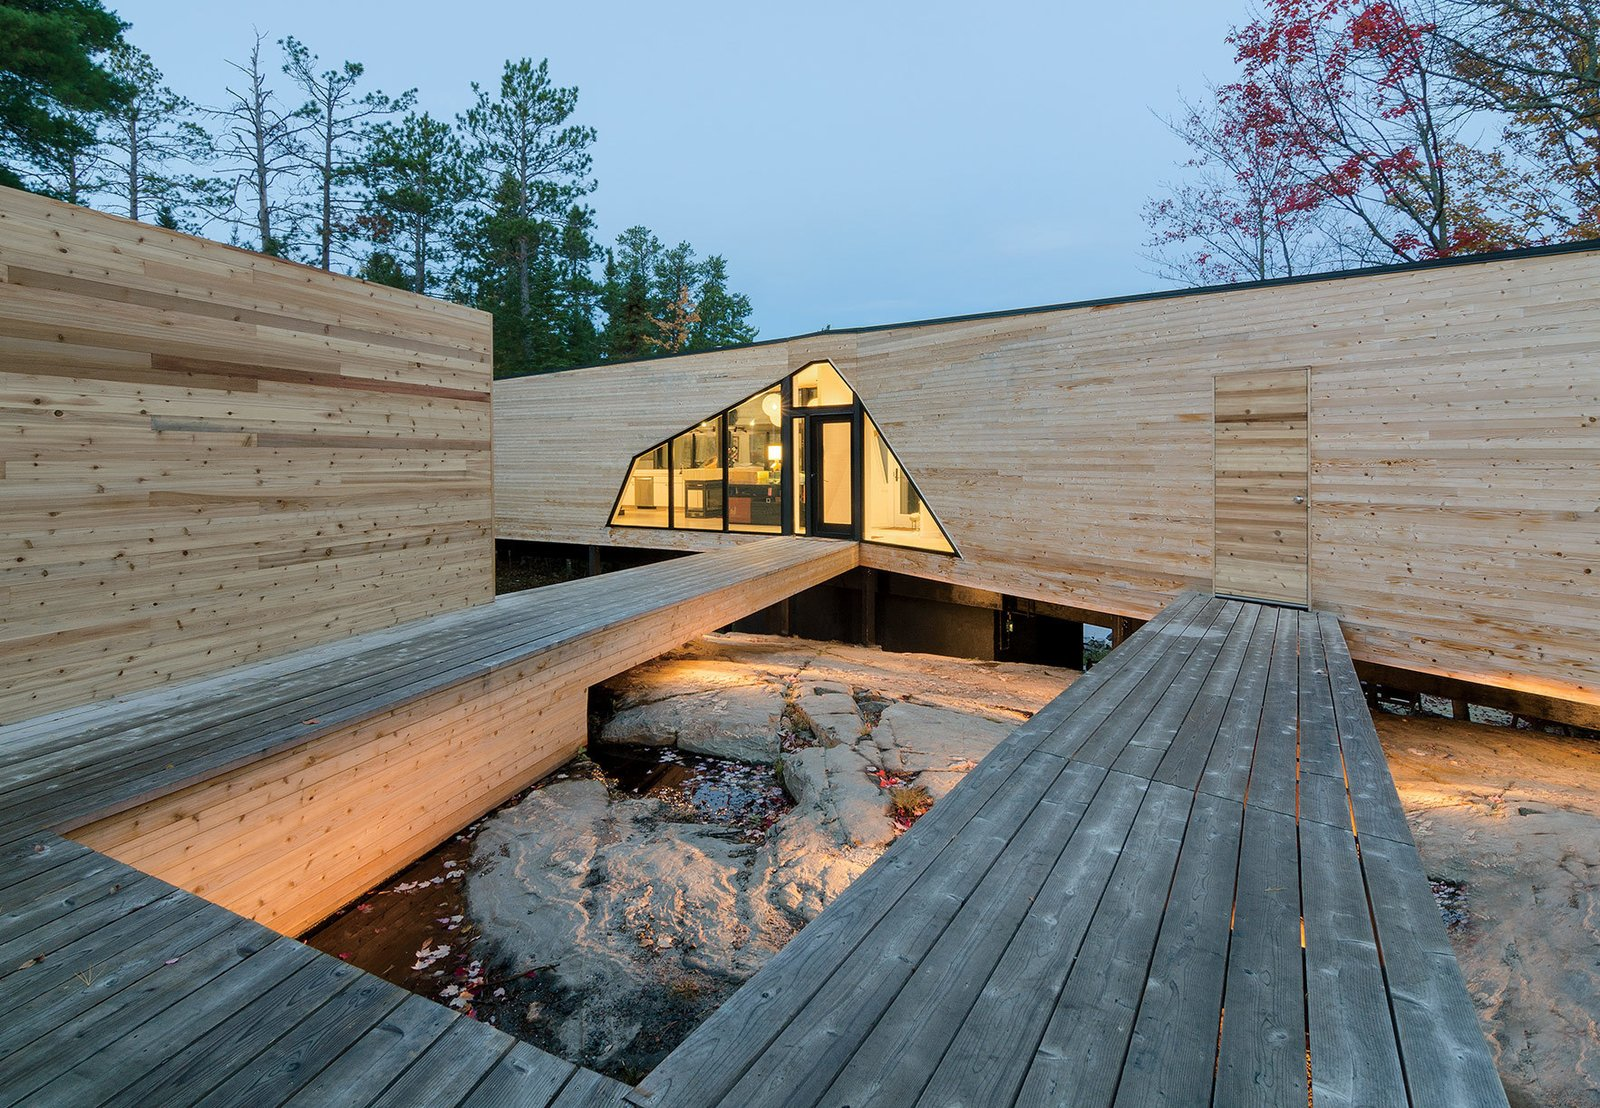 The three-bedroom home is connected to a dock house, garage, and vegetable garden by a network of wood walkways and decks.  Photo 3 of 4 in This Isolated Prefab Is One with the Wild